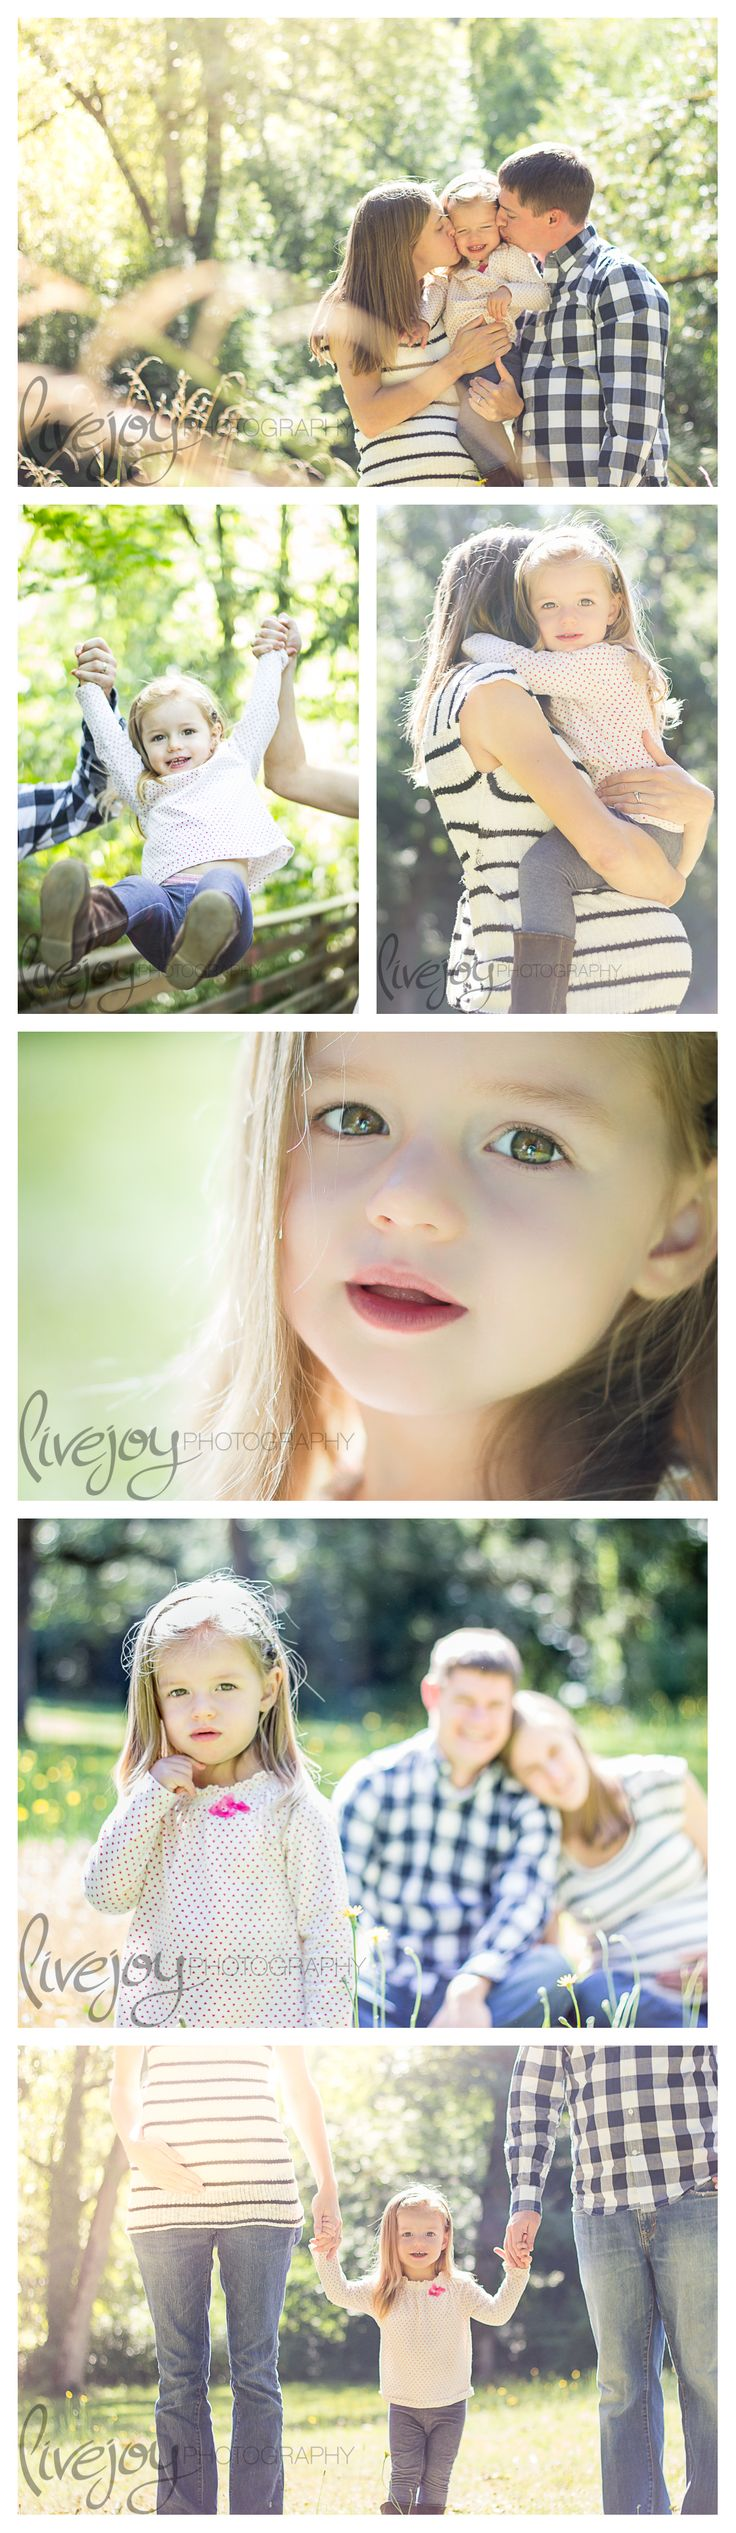 Family Photography #LiveJoyPhotography